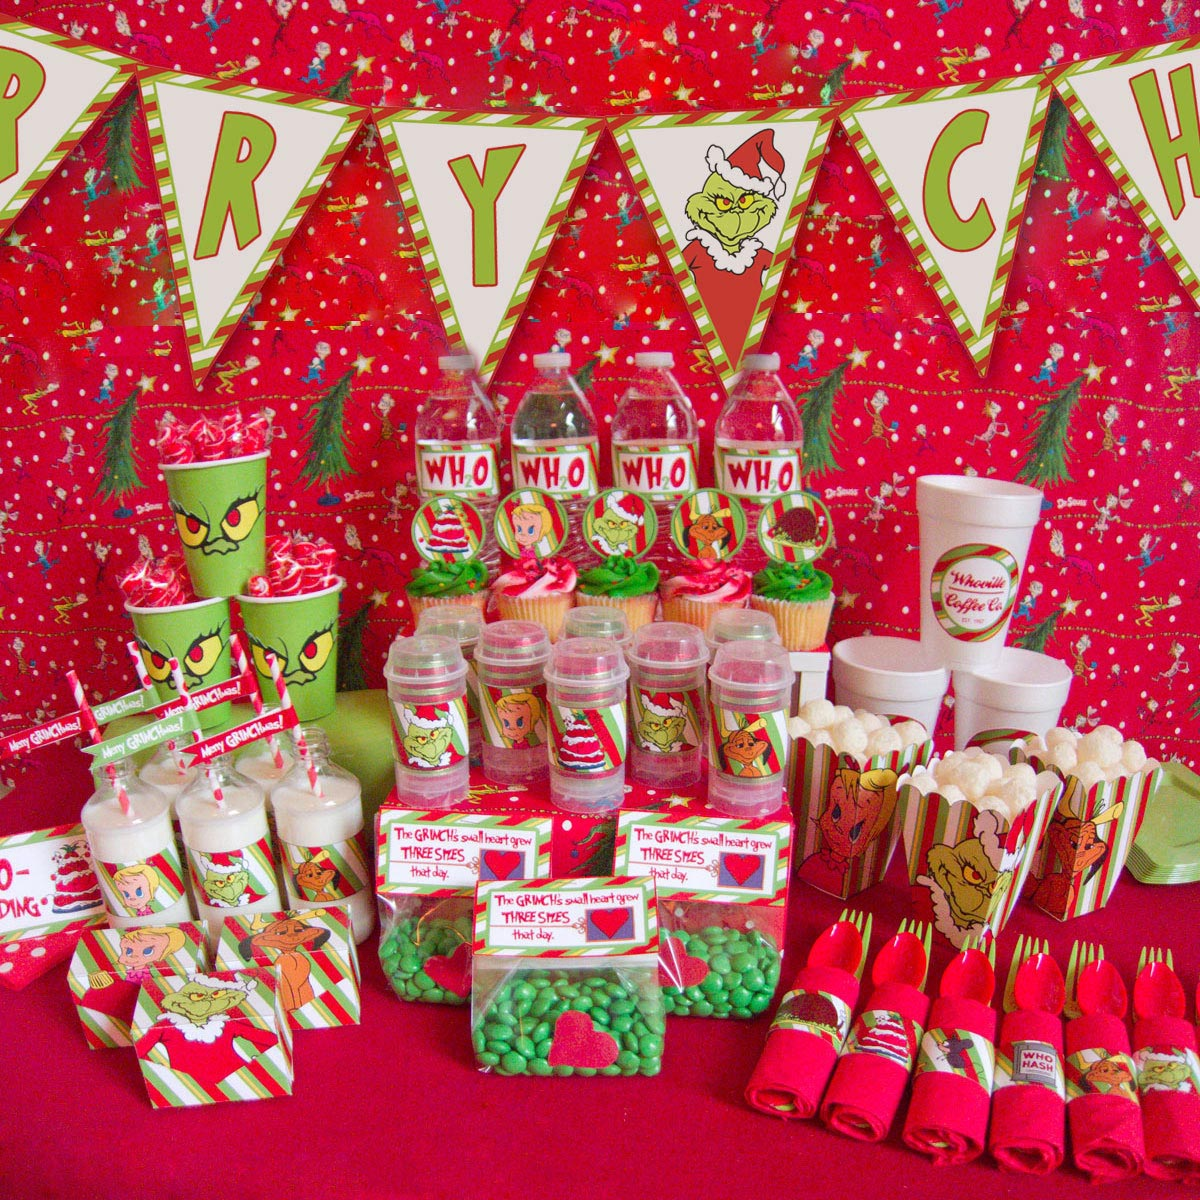 Superior Christmas Birthday Party Ideas Part - 6: How The Grinch Stole Christmas Birthday Party Ideas